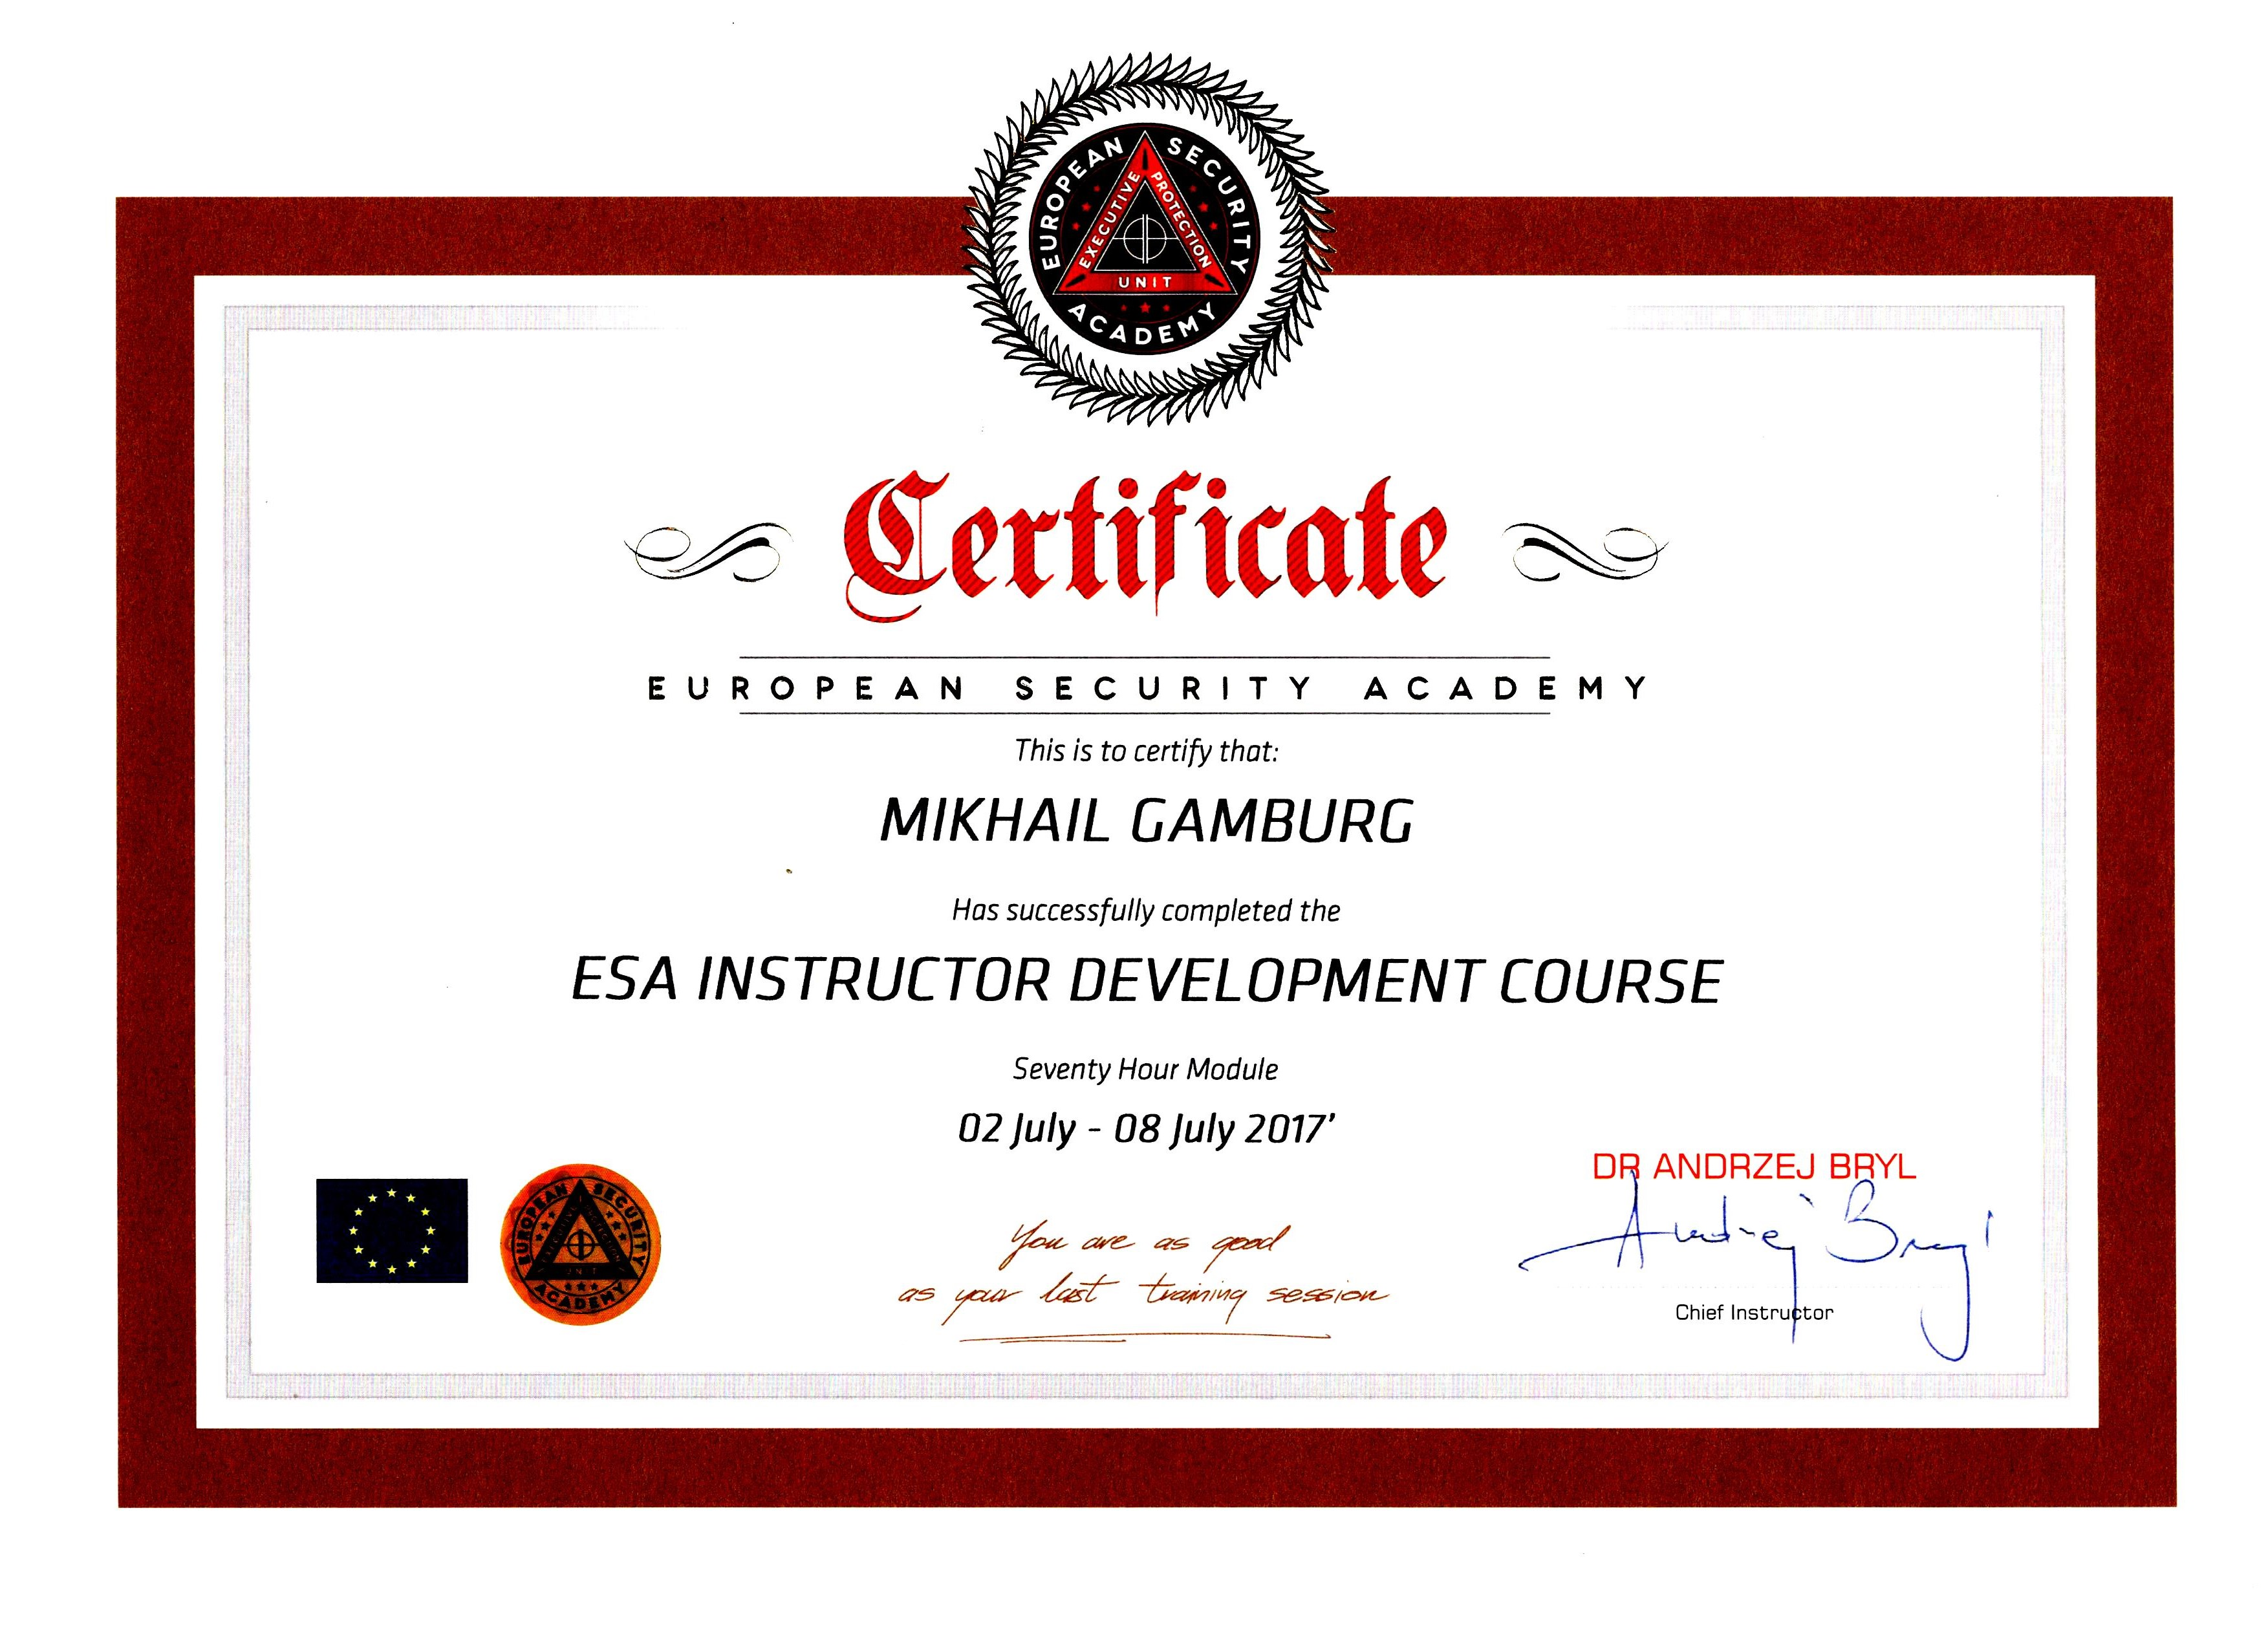 Certificate European Security Academy Mikhail Gamburg 02 July - 08 July 2017